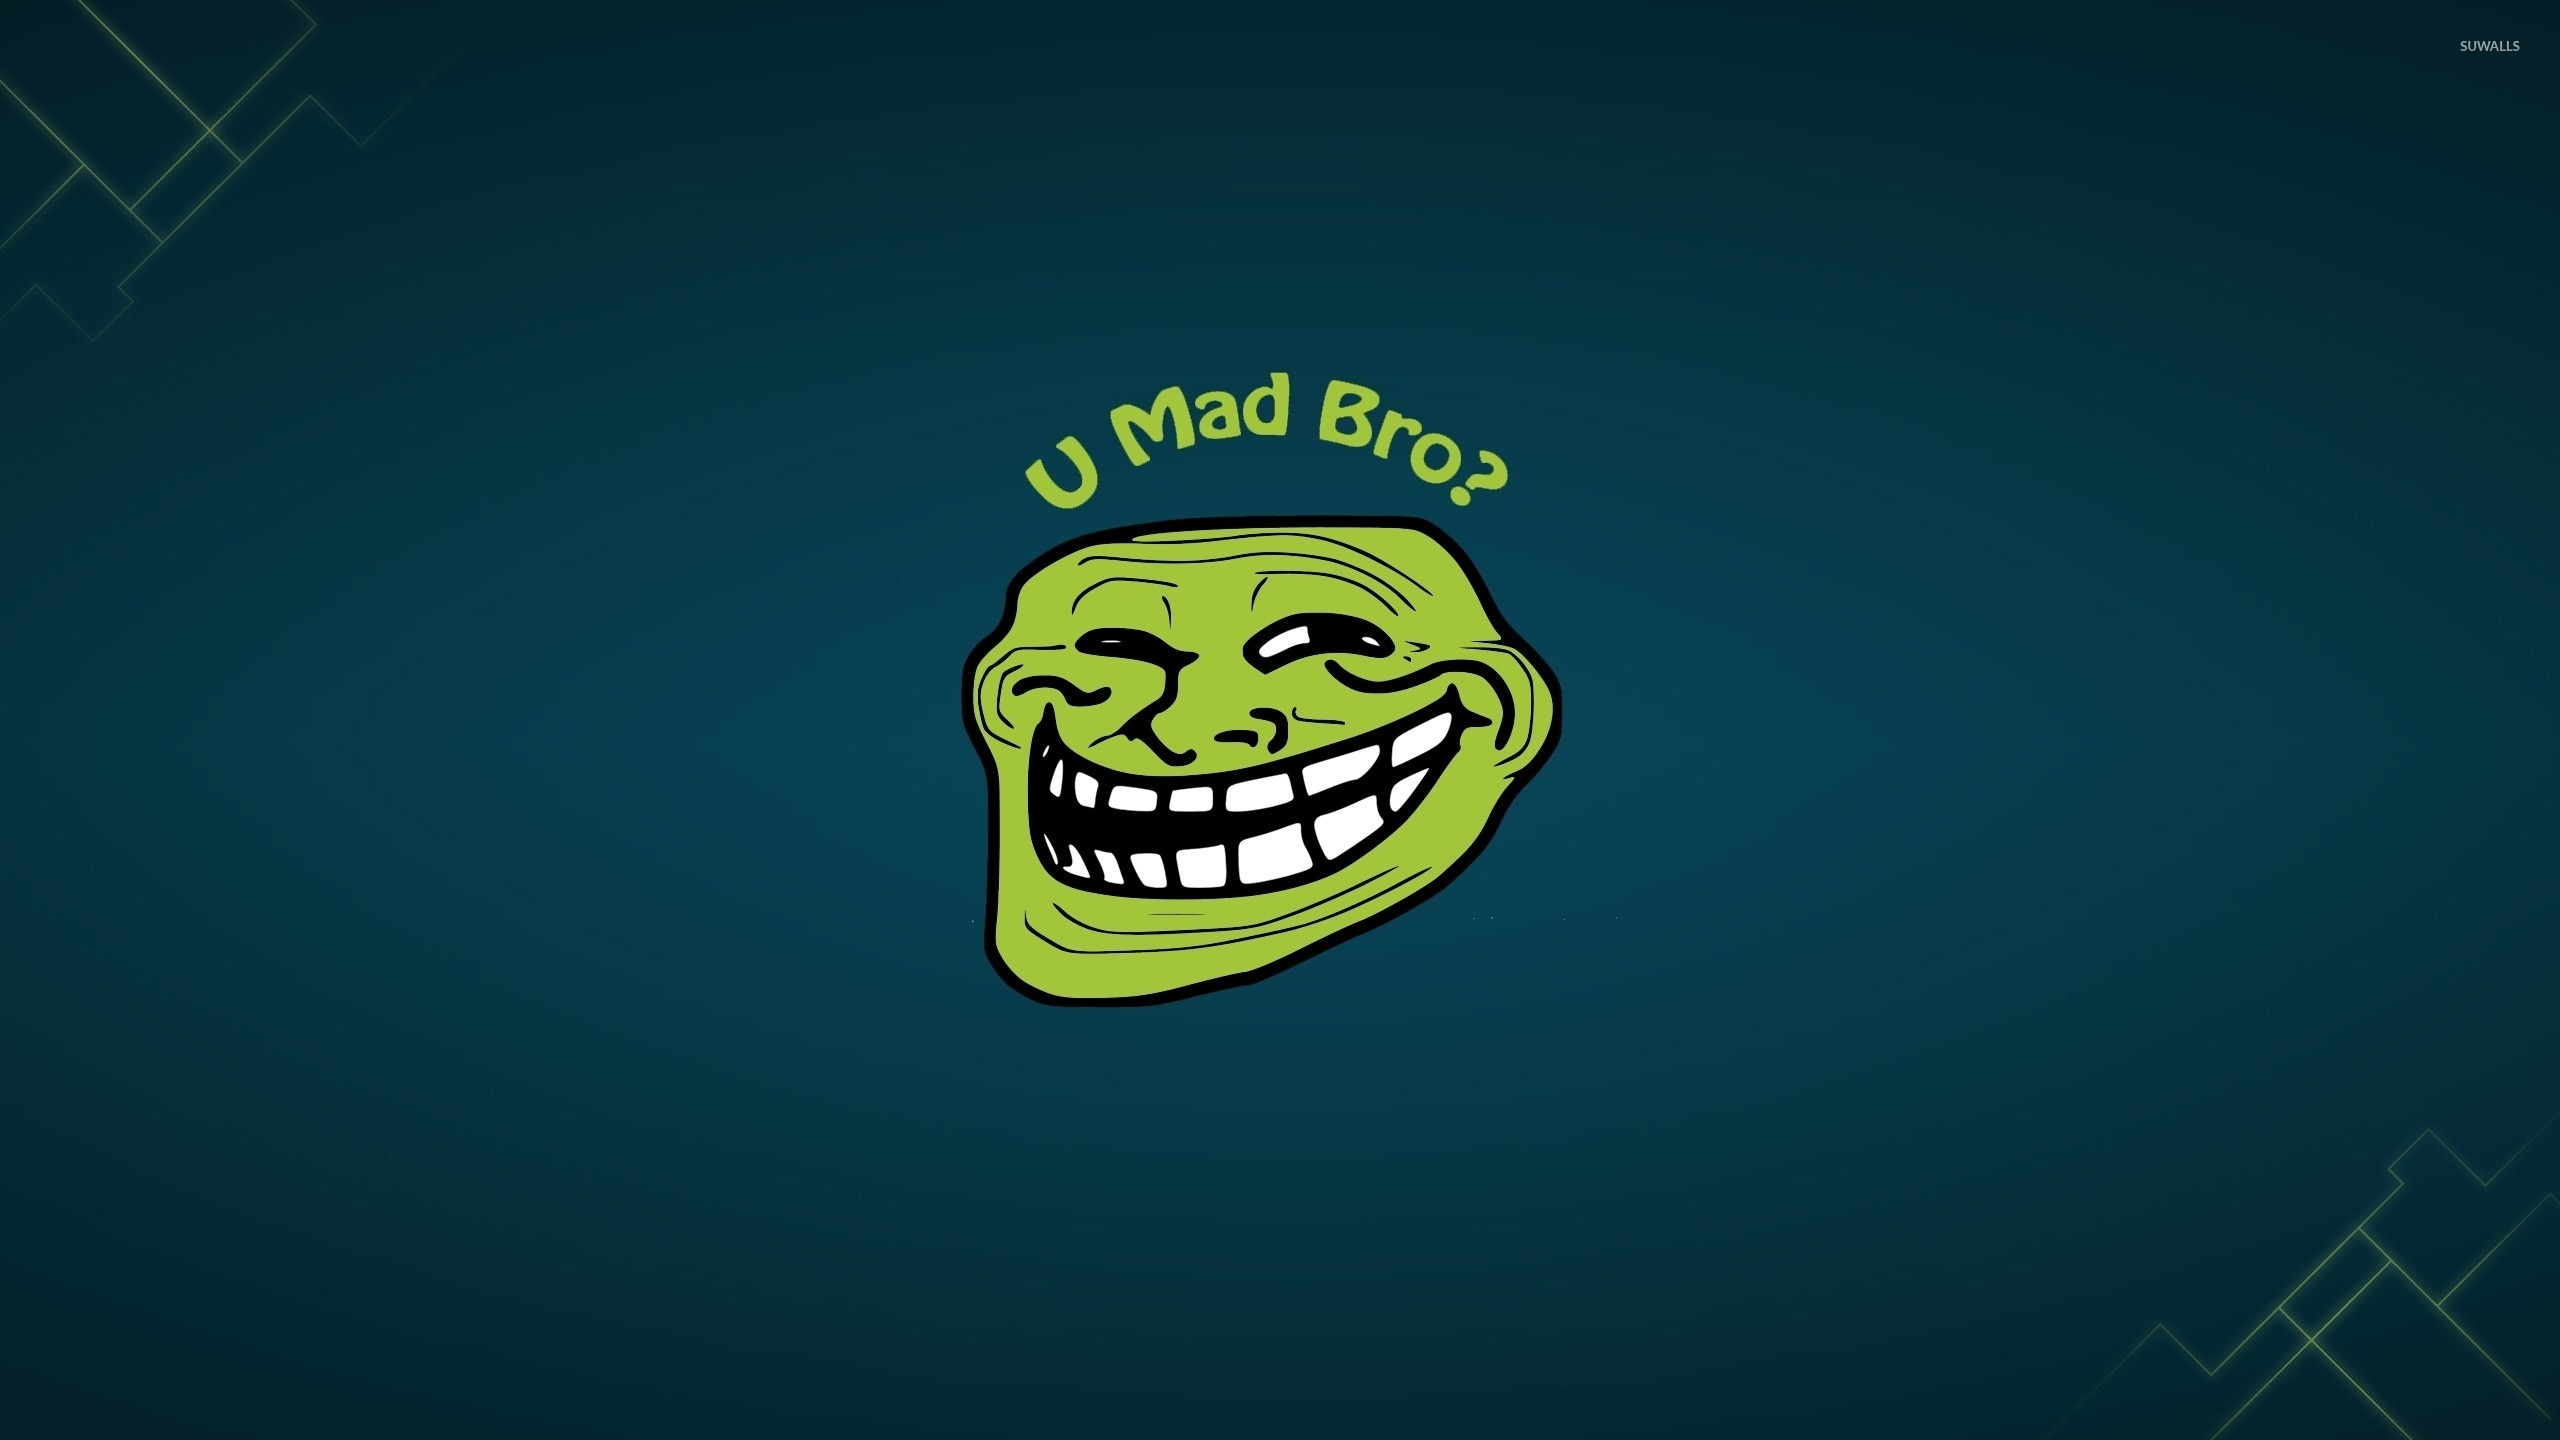 U mad bro wallpaper meme wallpapers 32412 u mad bro wallpaper voltagebd